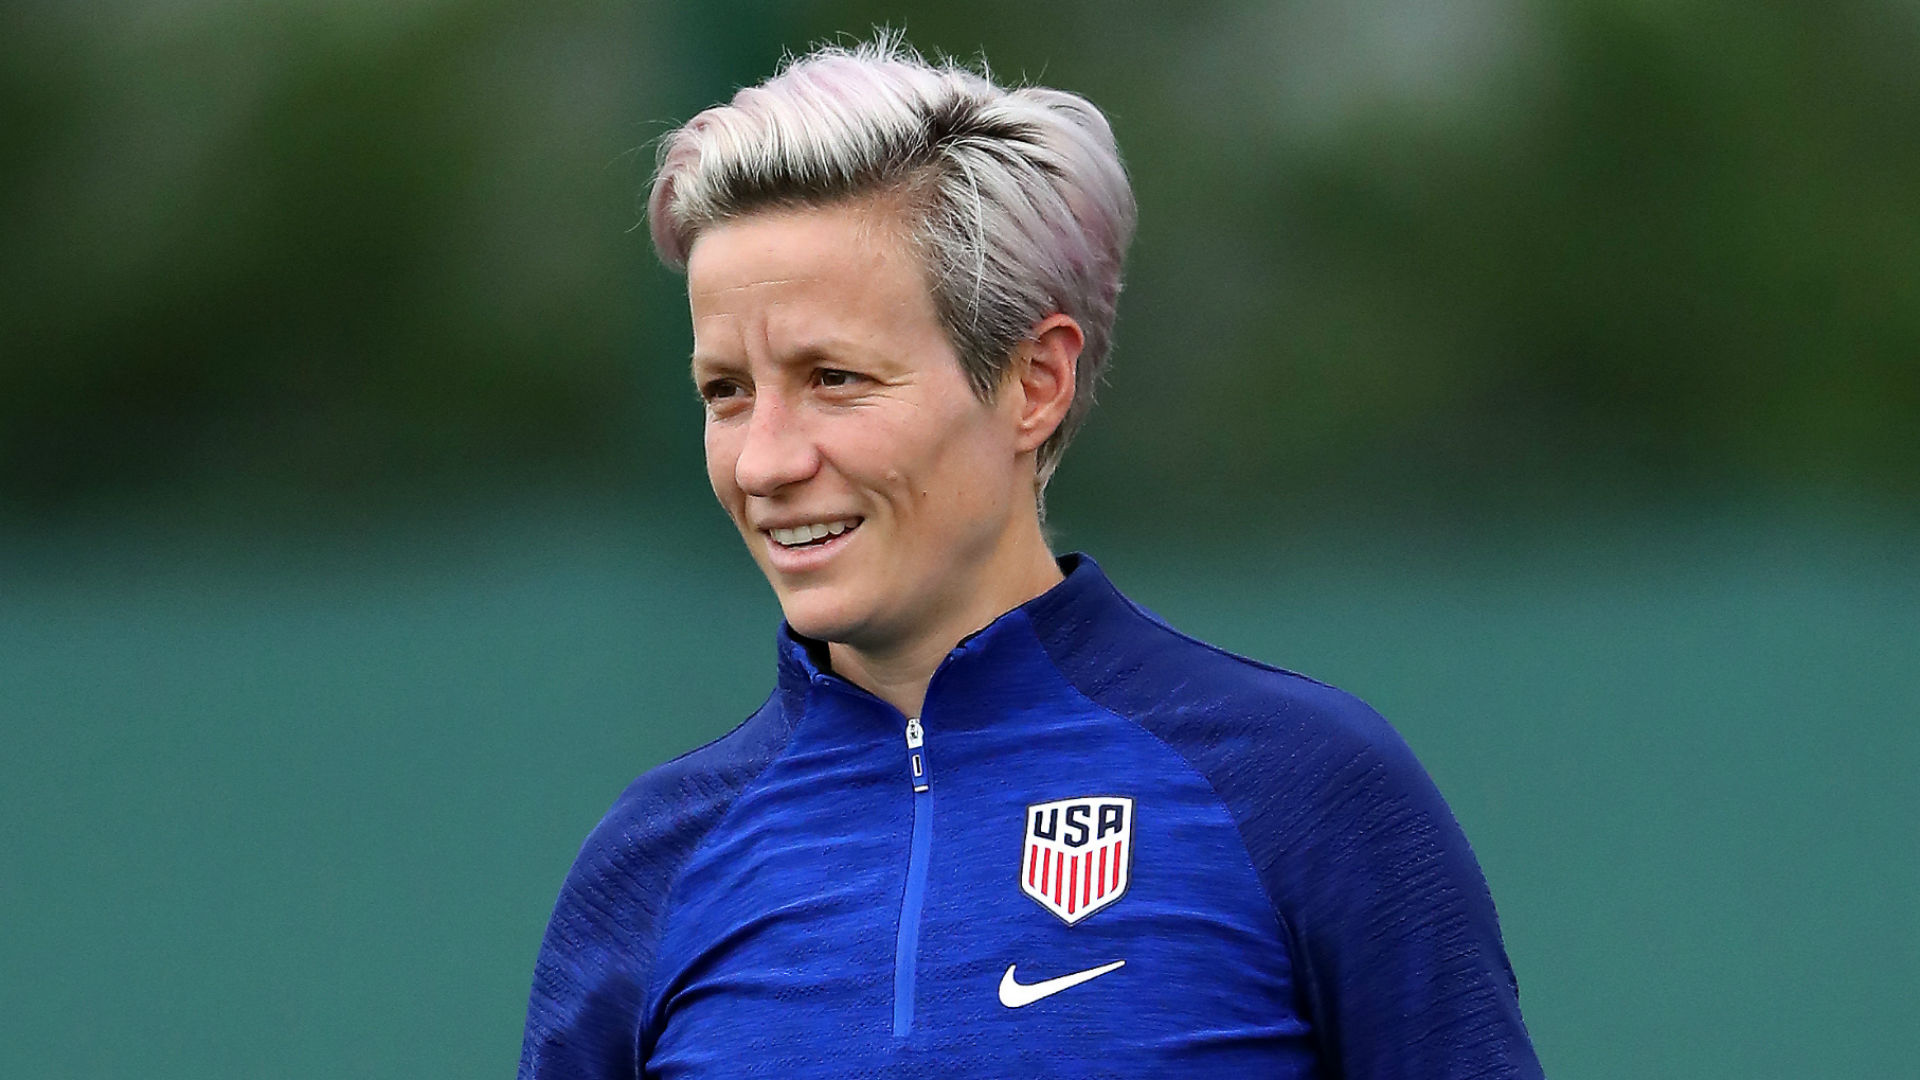 Rapinoe joins Serena Williams in vow to fight for equal pay 'every day until I'm in my grave'